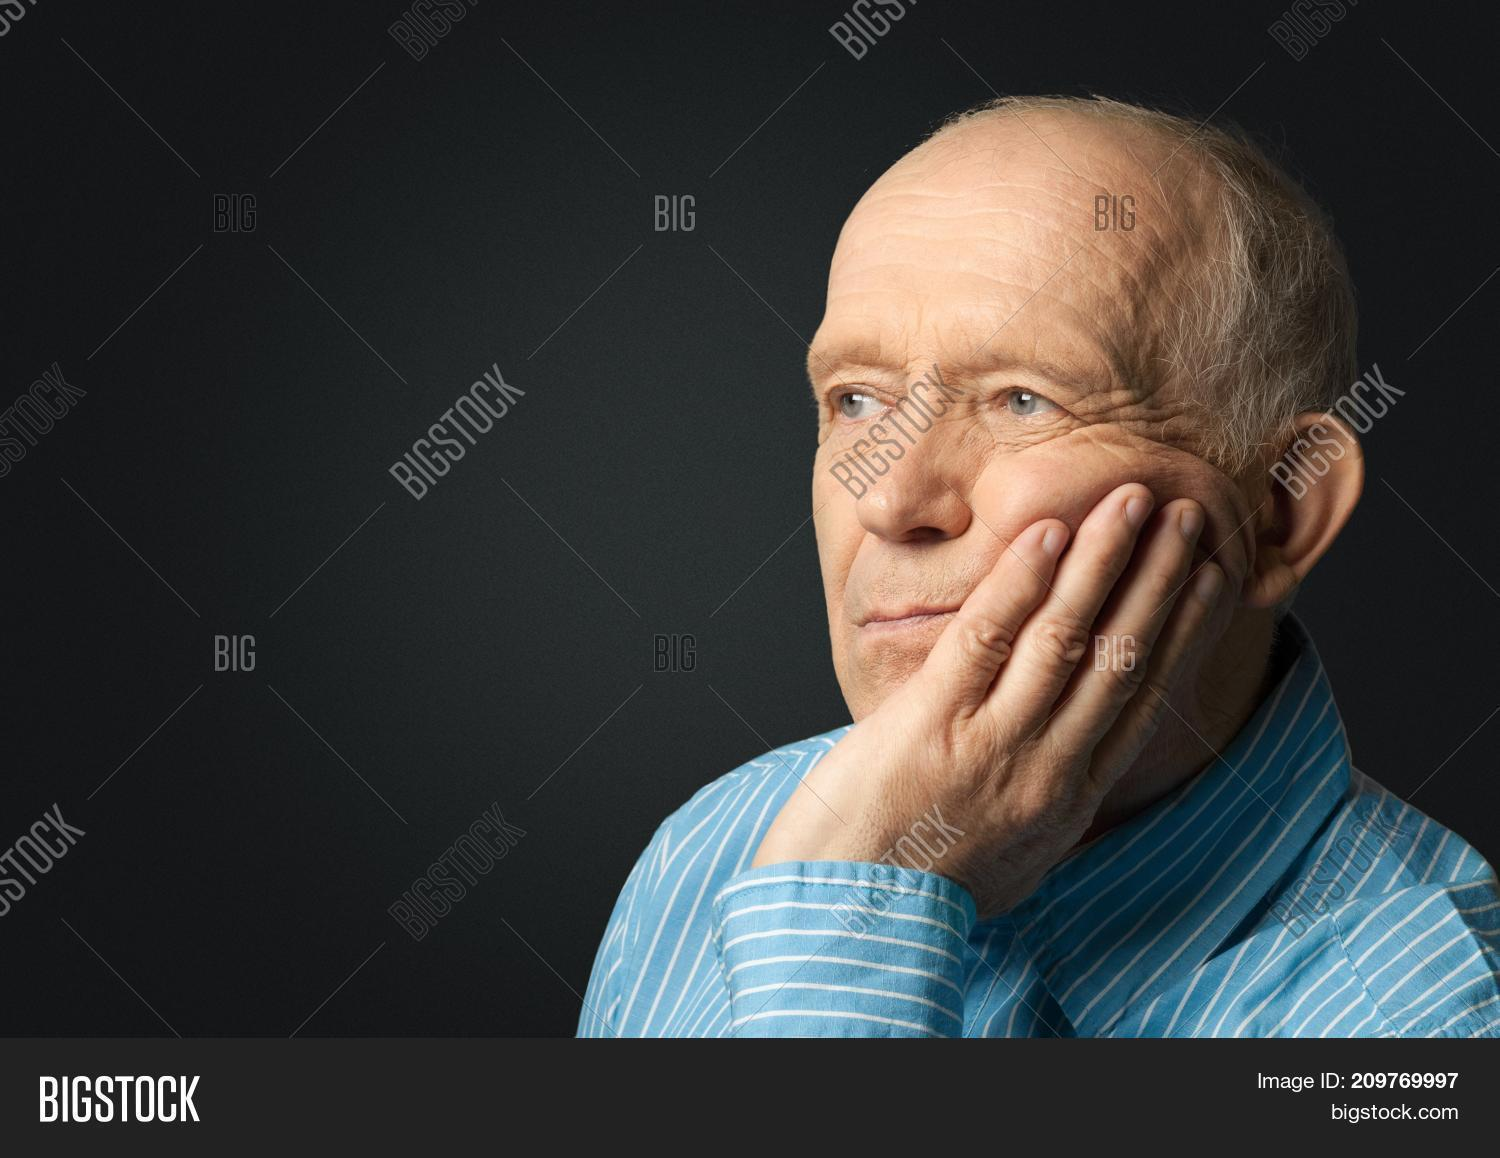 Image of: Masterfile Man Elderly Sad Old Man Senior Adult Grey Hair Old People Bigstock Man Elderly Sad Old Image Photo free Trial Bigstock